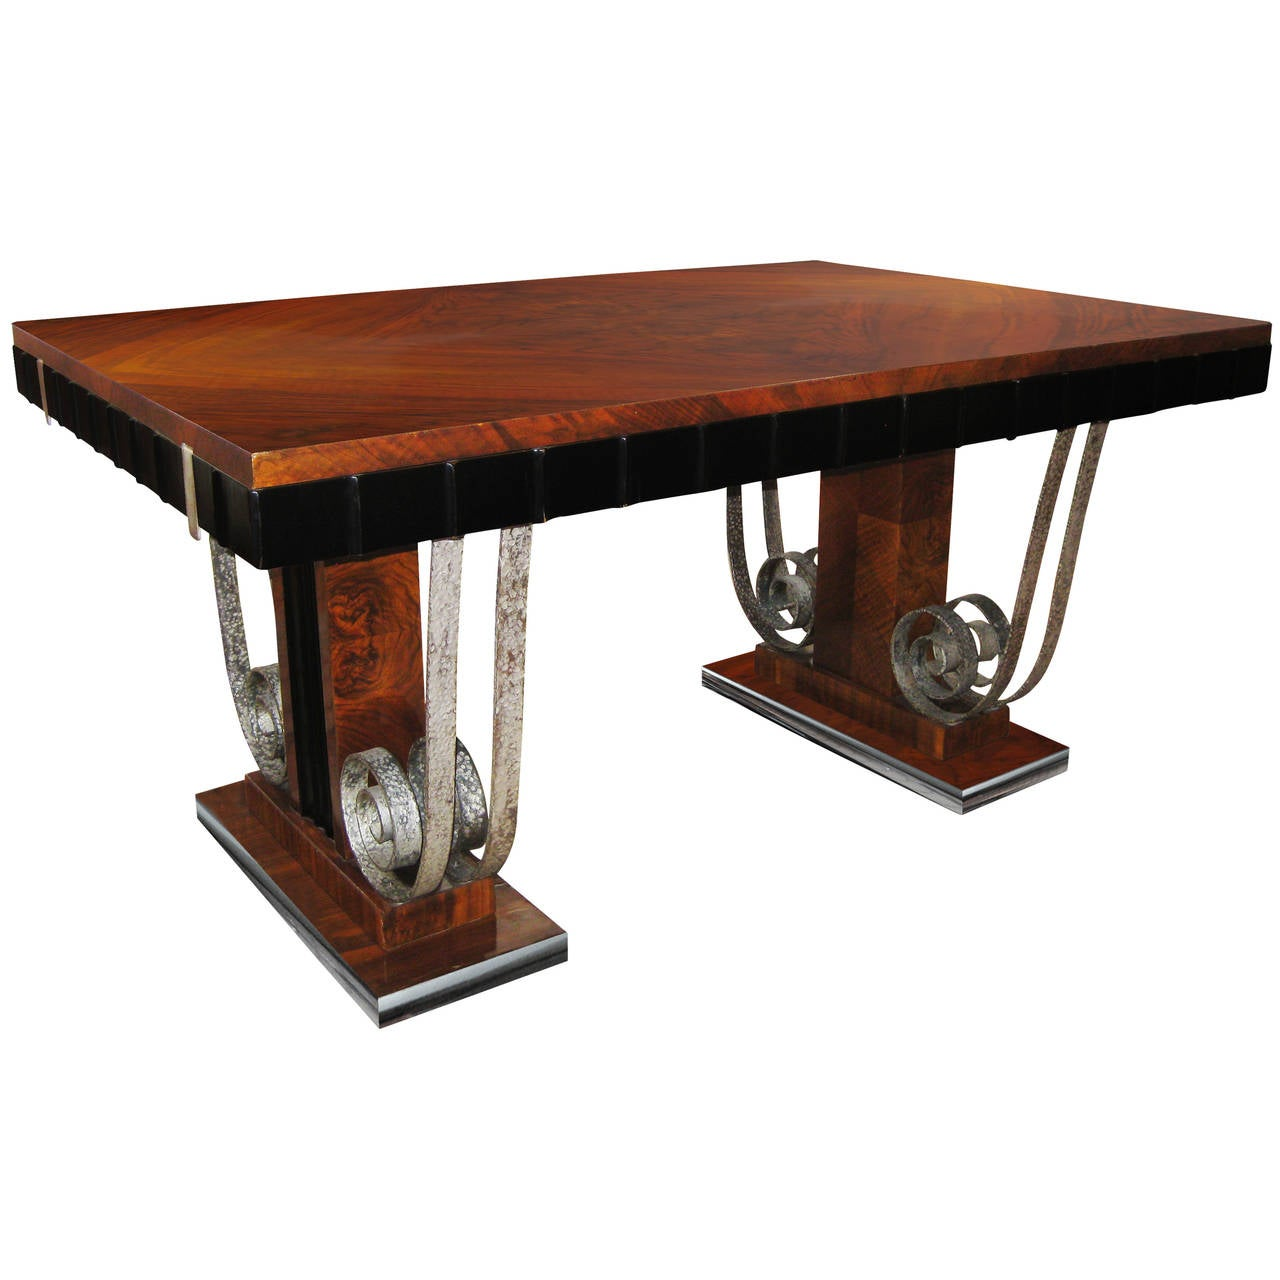 French art deco dining table at 1stdibs - Table de nuit art deco ...